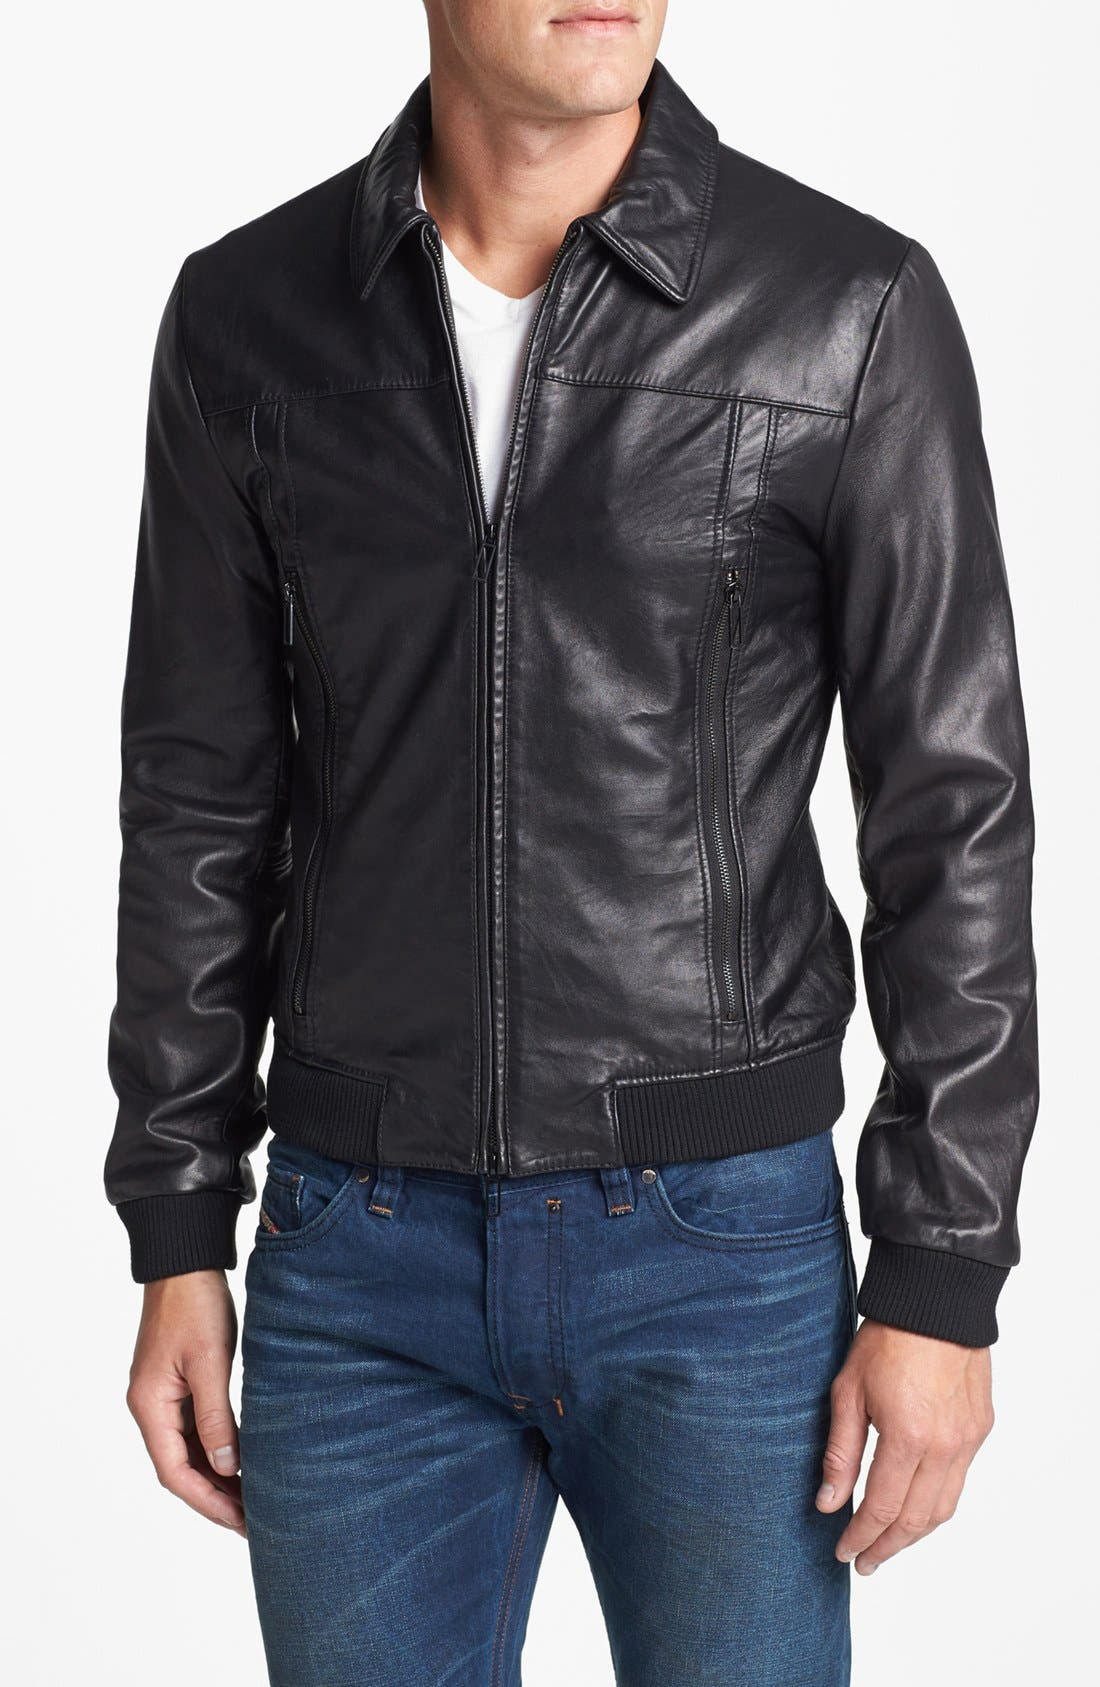 Alternate Image 1 Selected - 7 Diamonds 'Spyder' Leather Jacket